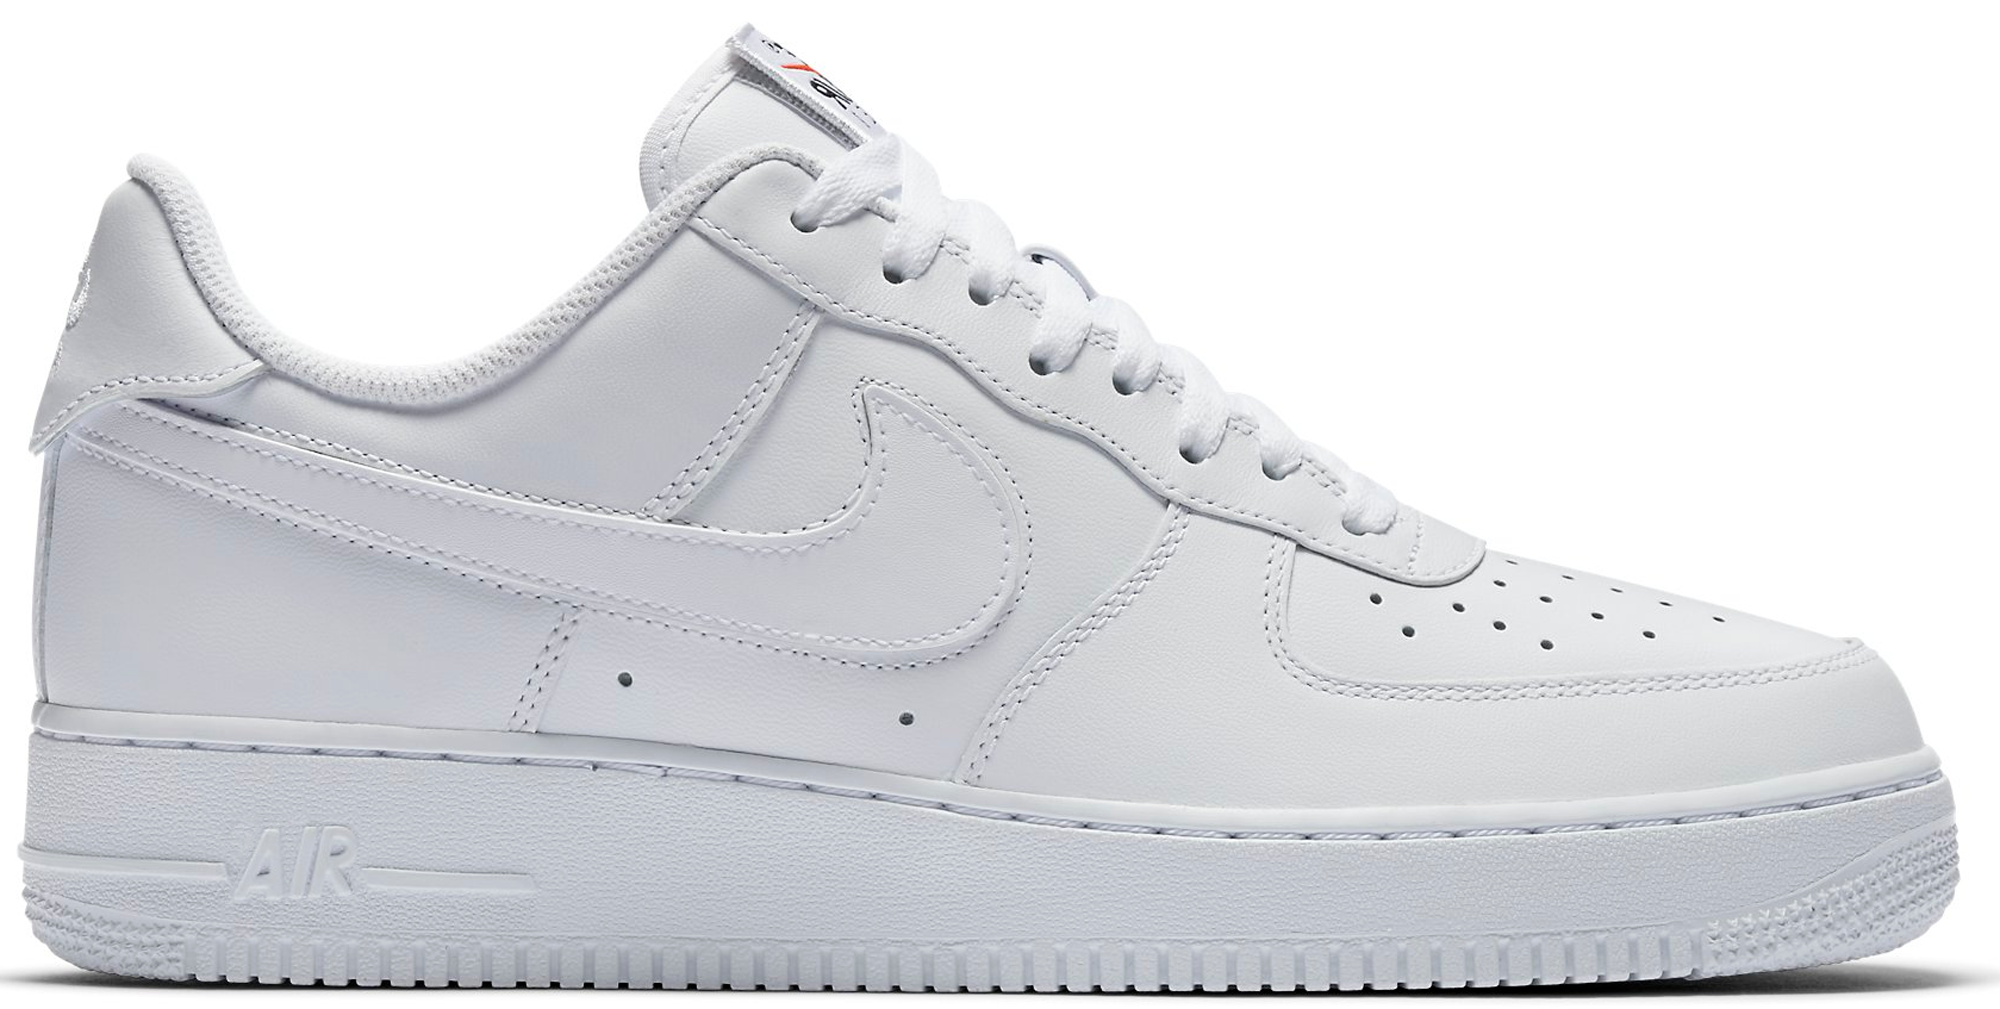 nike air force 1 white. Air Force 1 Low Swoosh Pack All-Star 2018 (White) Nike White F